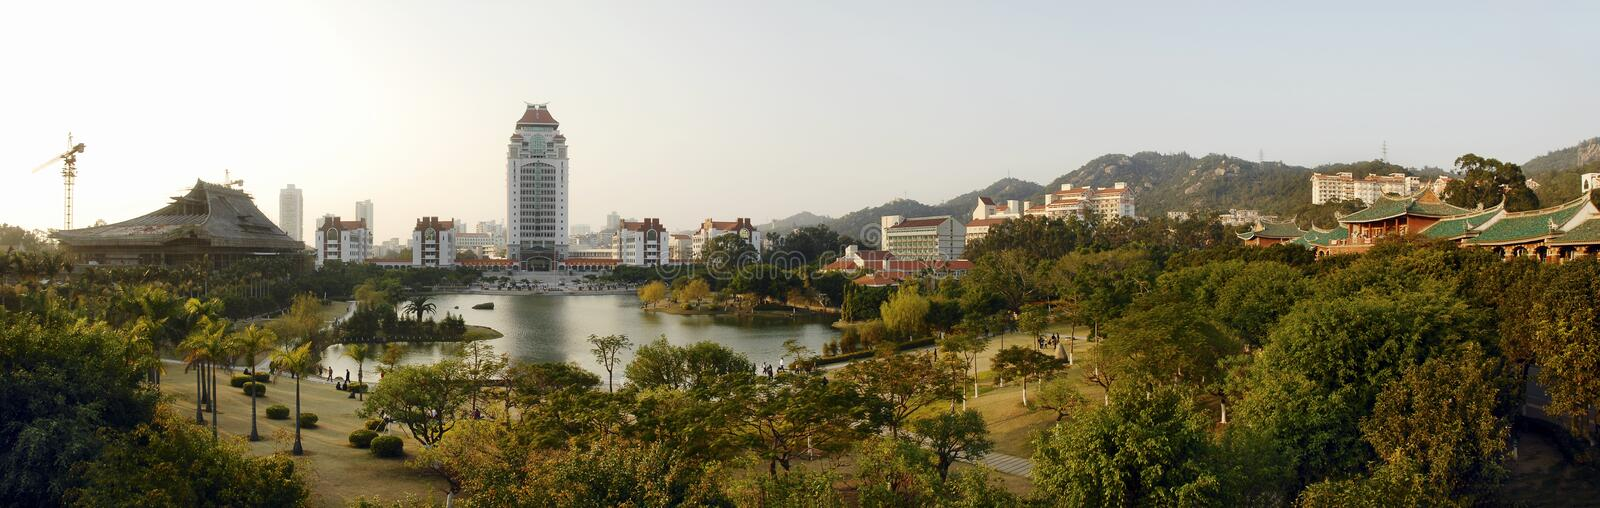 Xiamen University. This is xiamen university,Located in Xiamen in China,It is a very beautiful university,Also has a long history royalty free stock images